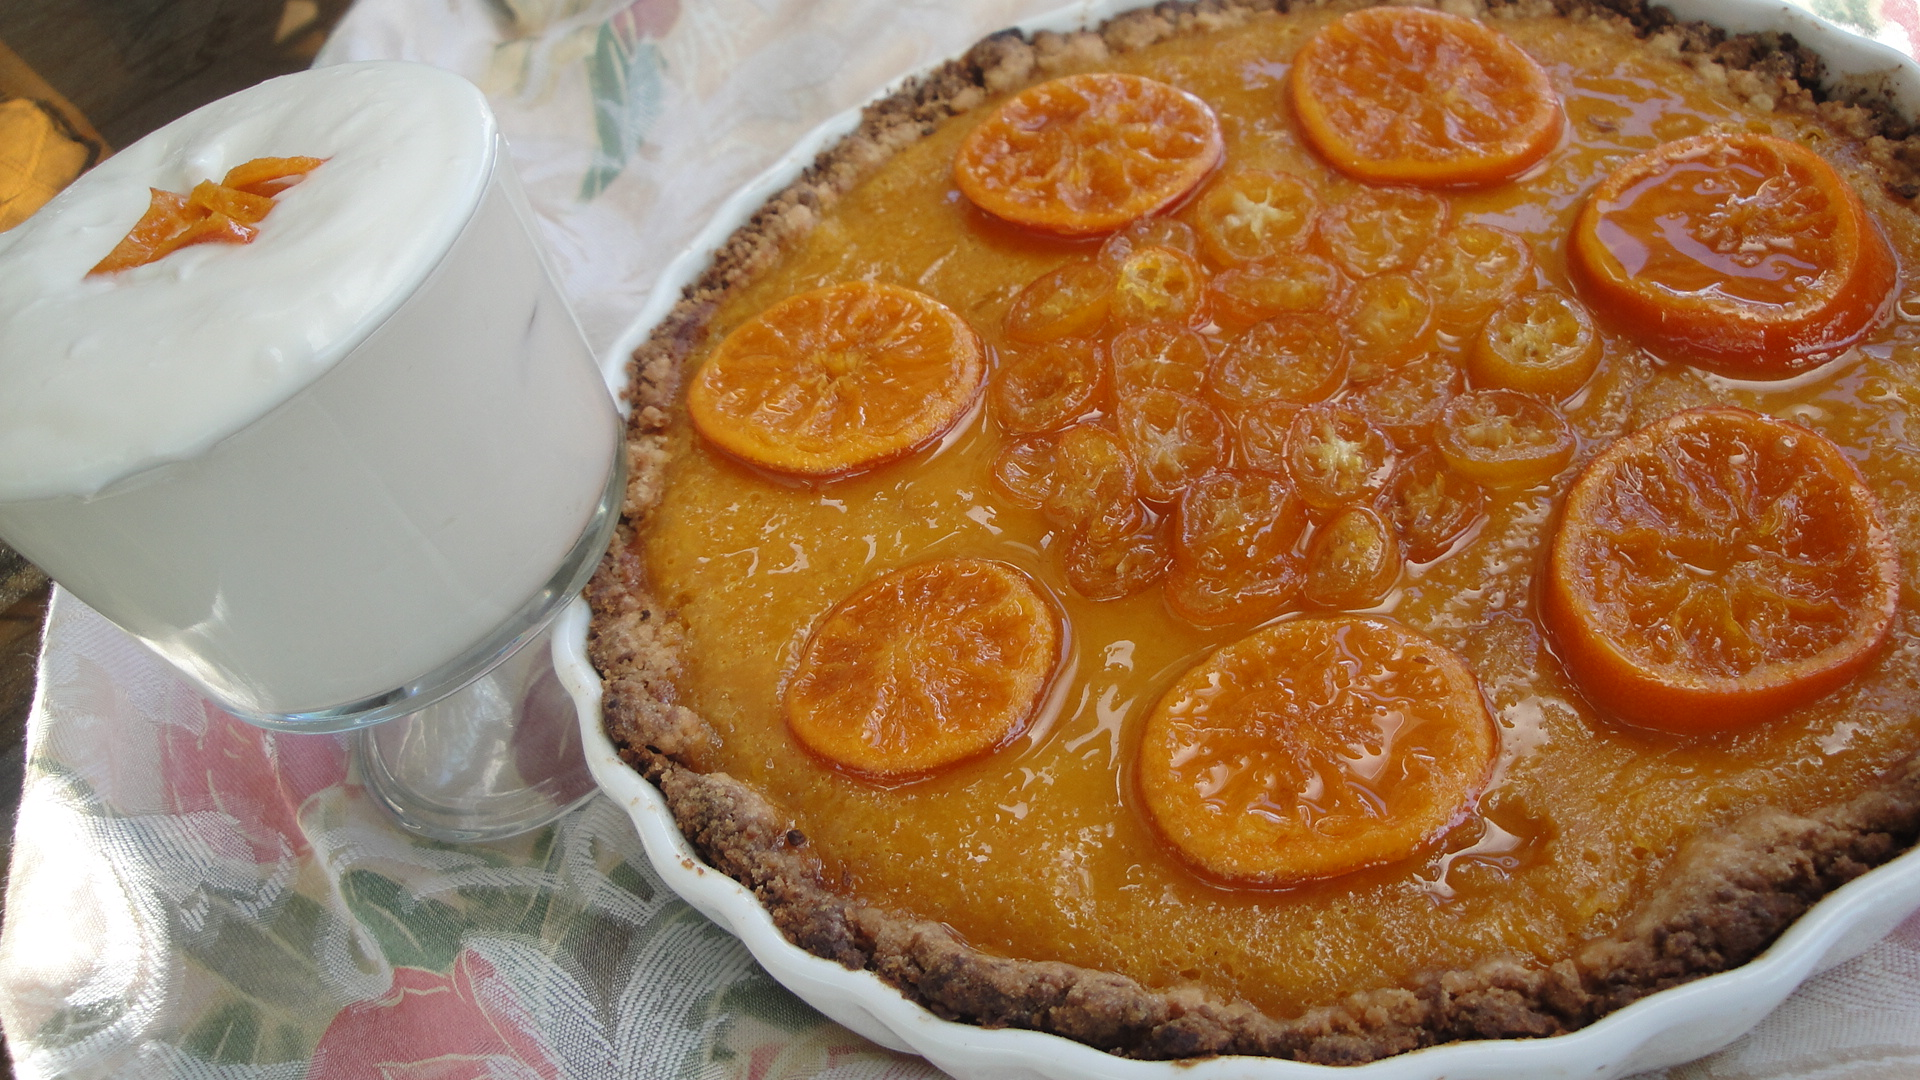 Extreme Mandarin Tart with Kumquat Glaze and Limoncello Syllabub